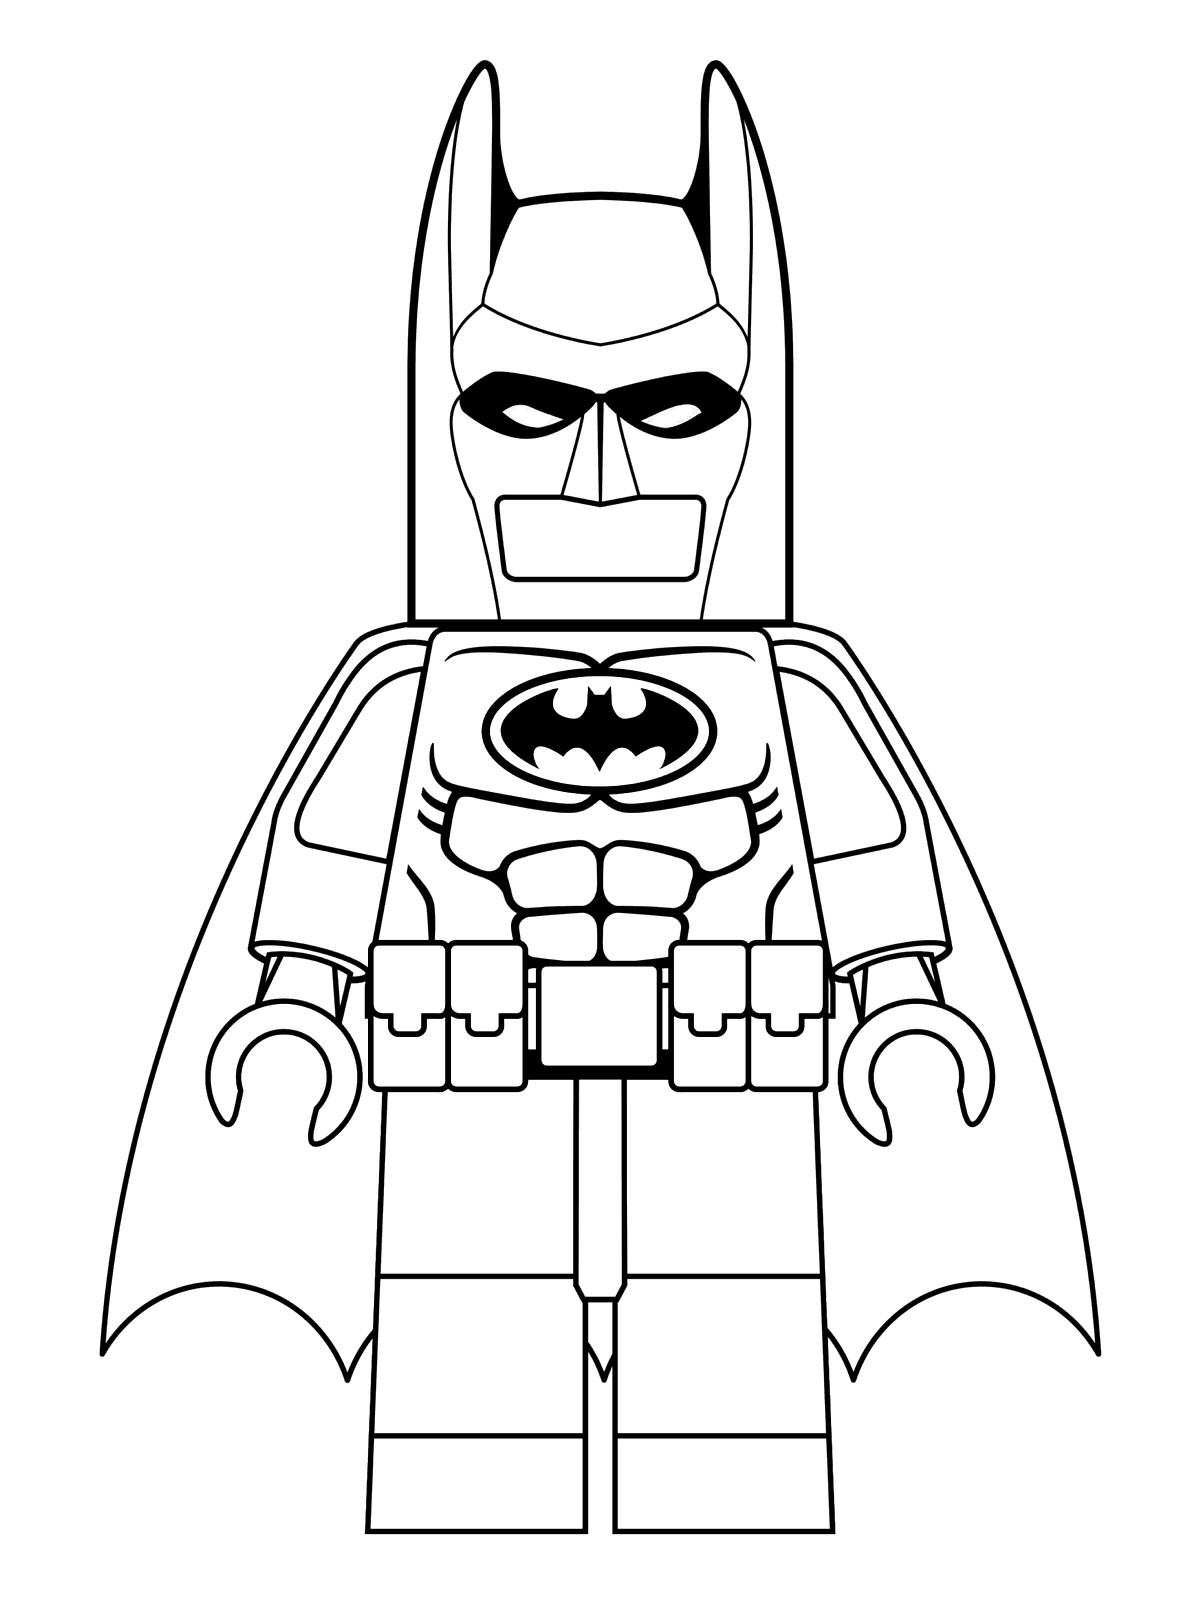 lego city coloring pages batman - photo#11